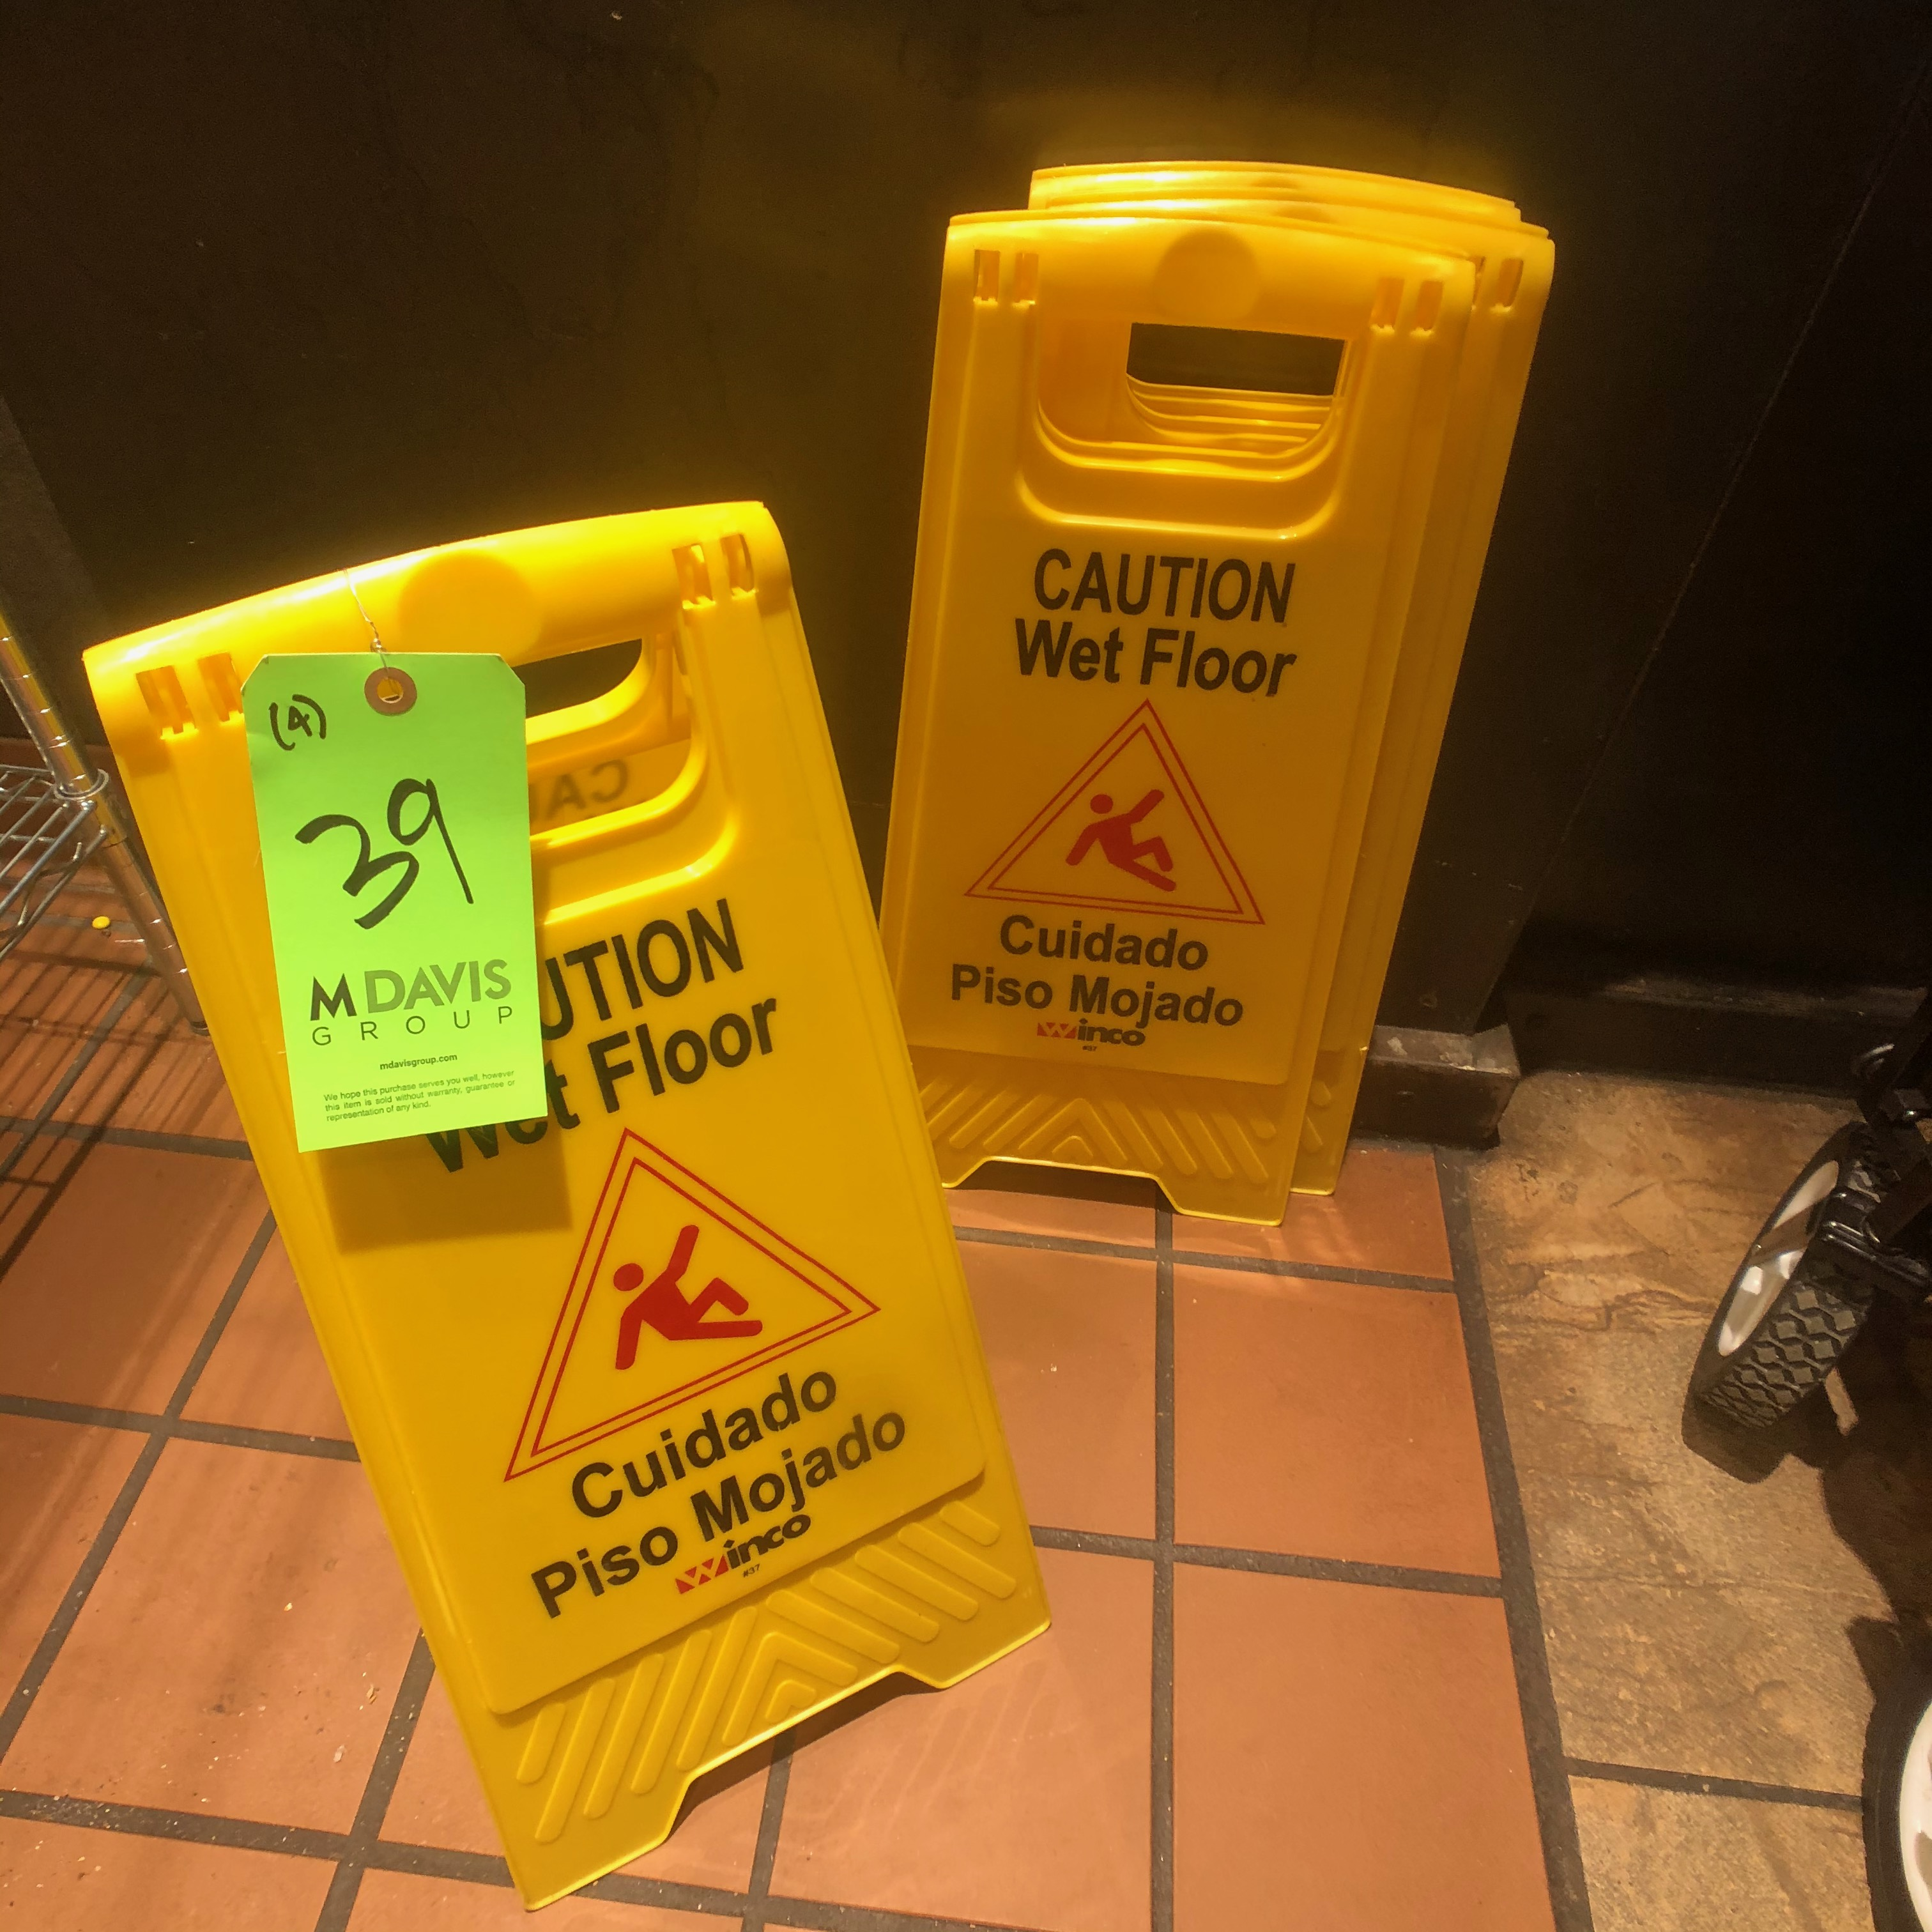 (4) Winco Yellow Caution Wet Floor Signs - Image 3 of 3